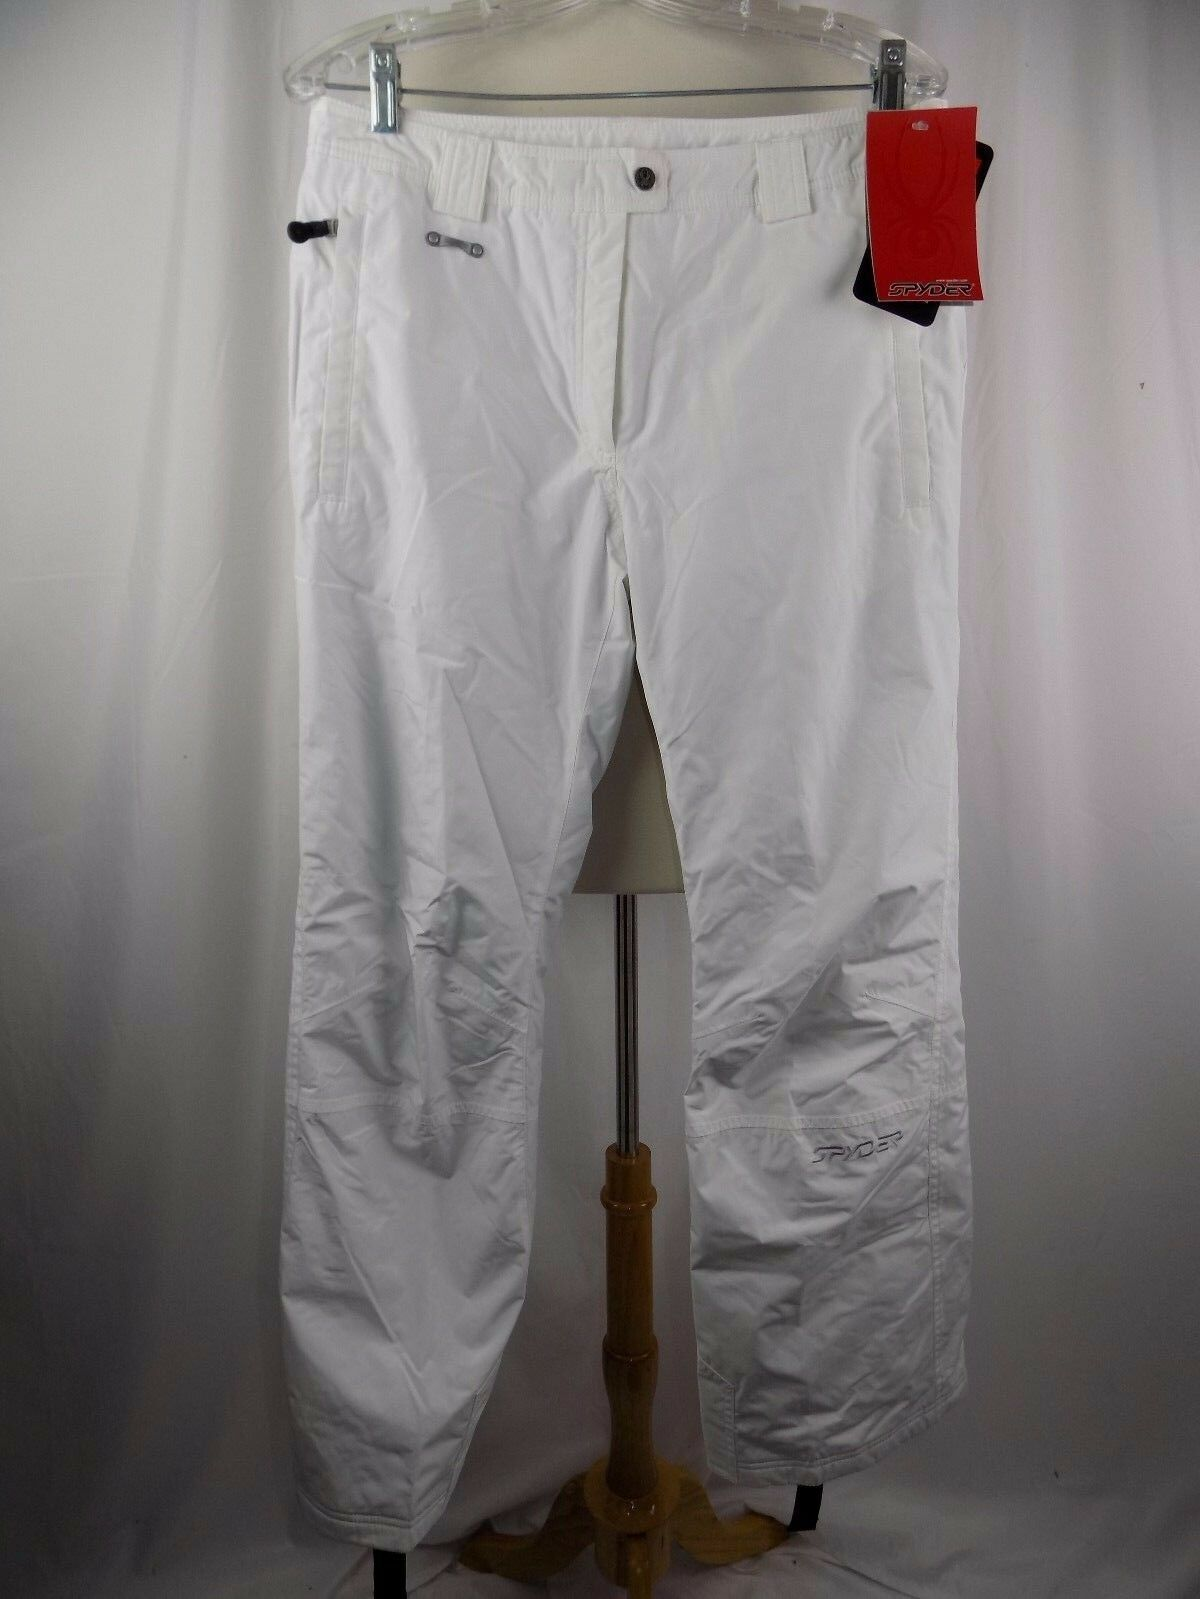 SPYDER PANTS SKI SNOWBOARDING WOMEN'S SZ 10 THINSULATE 34 x 31 NEW